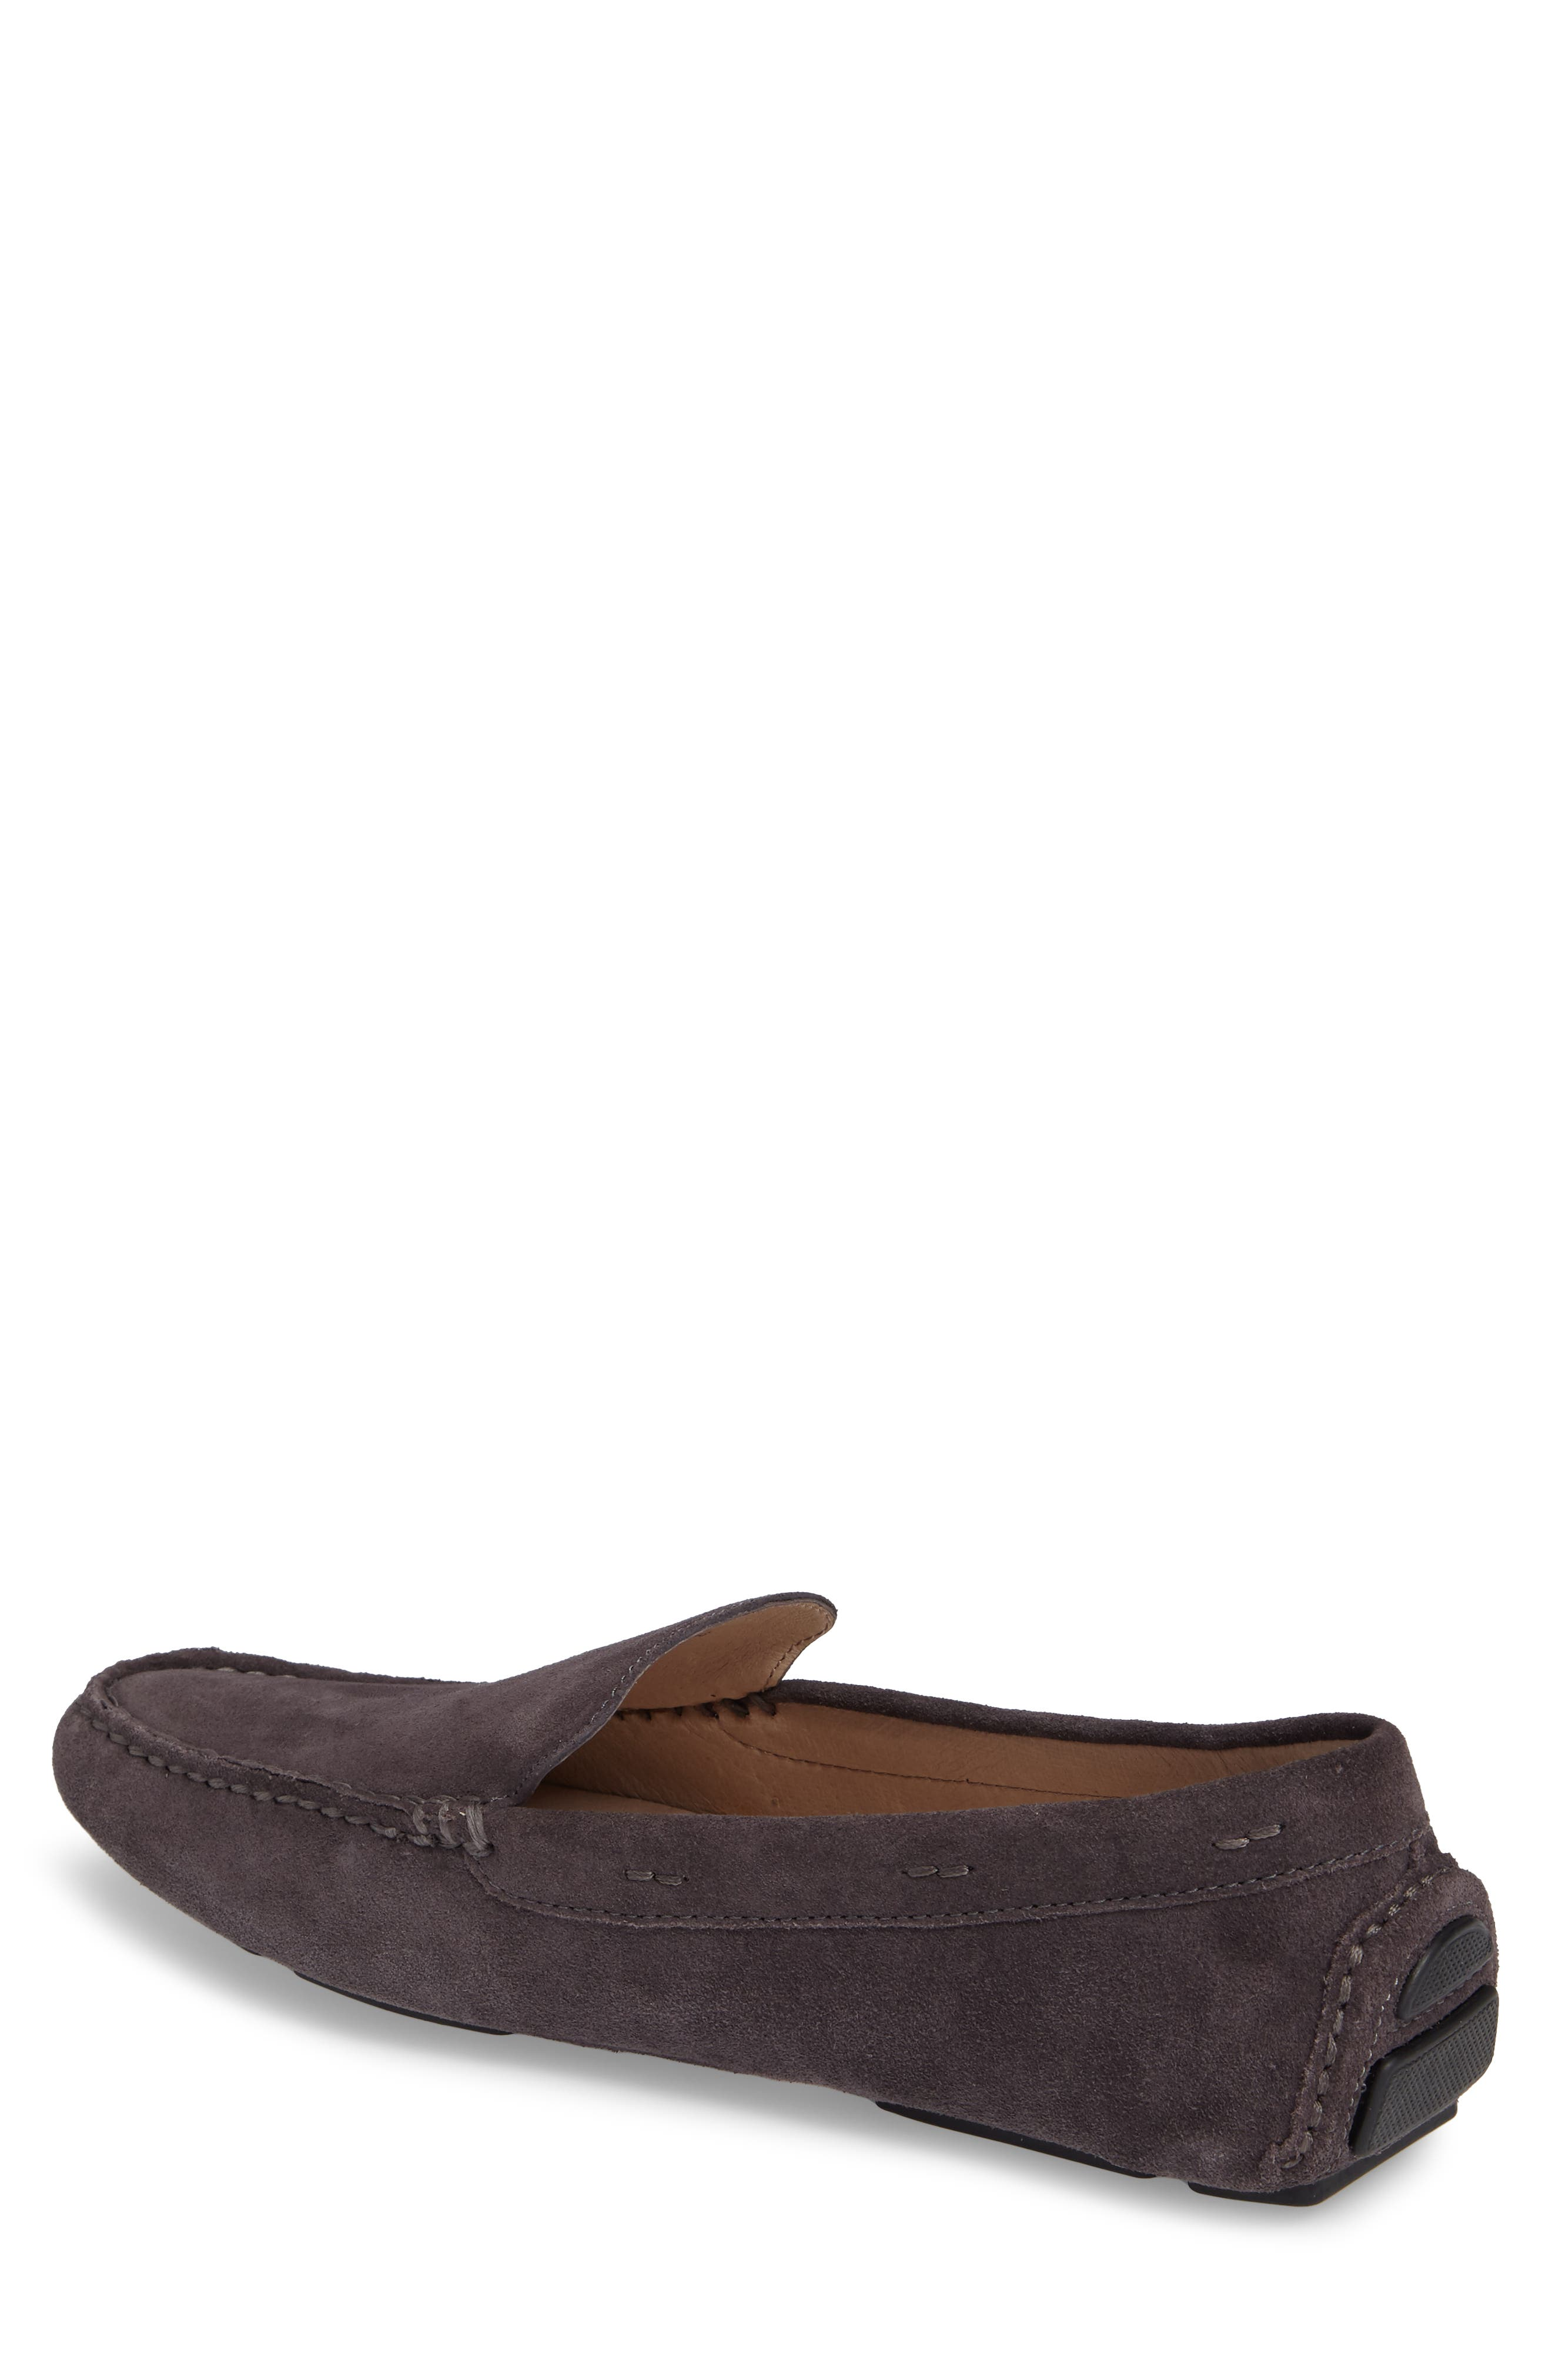 Pagota Driving Loafer,                             Alternate thumbnail 7, color,